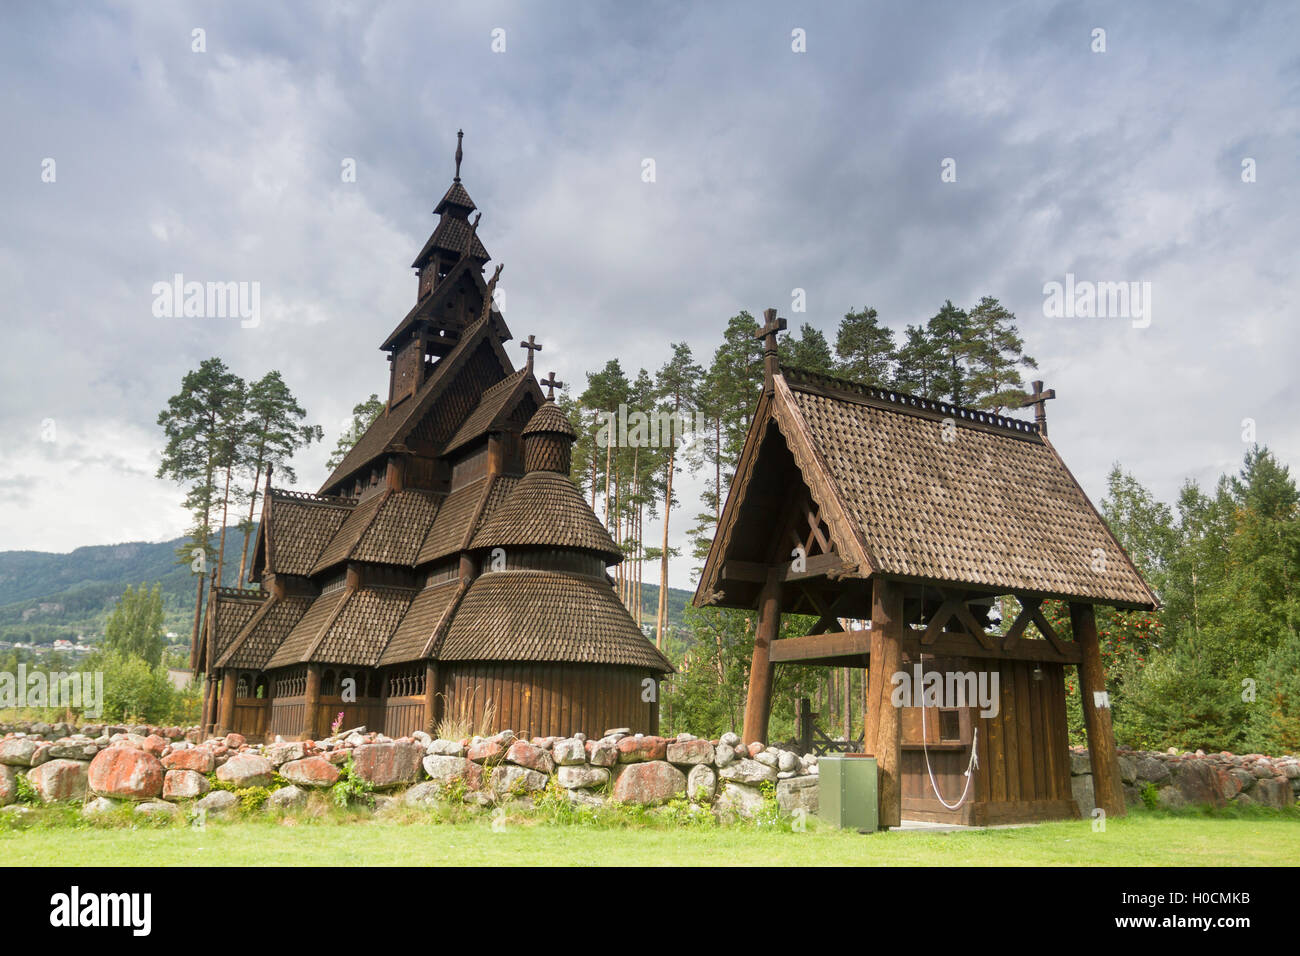 Gol stavkirke, Norway. - Stock Image